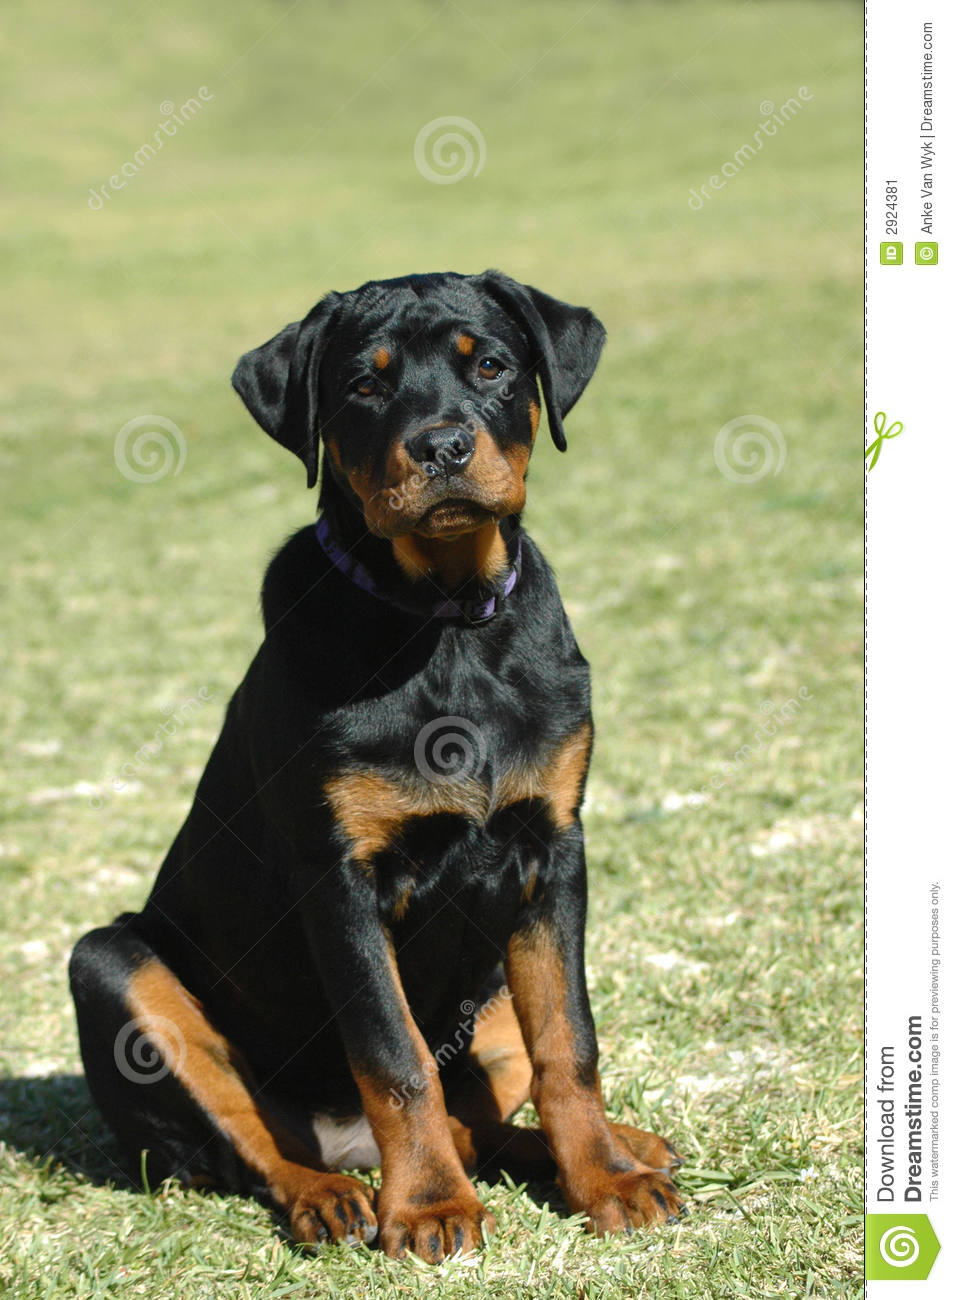 Rottweiler Puppy Stock Image Image Of Expressions Breed 2924381